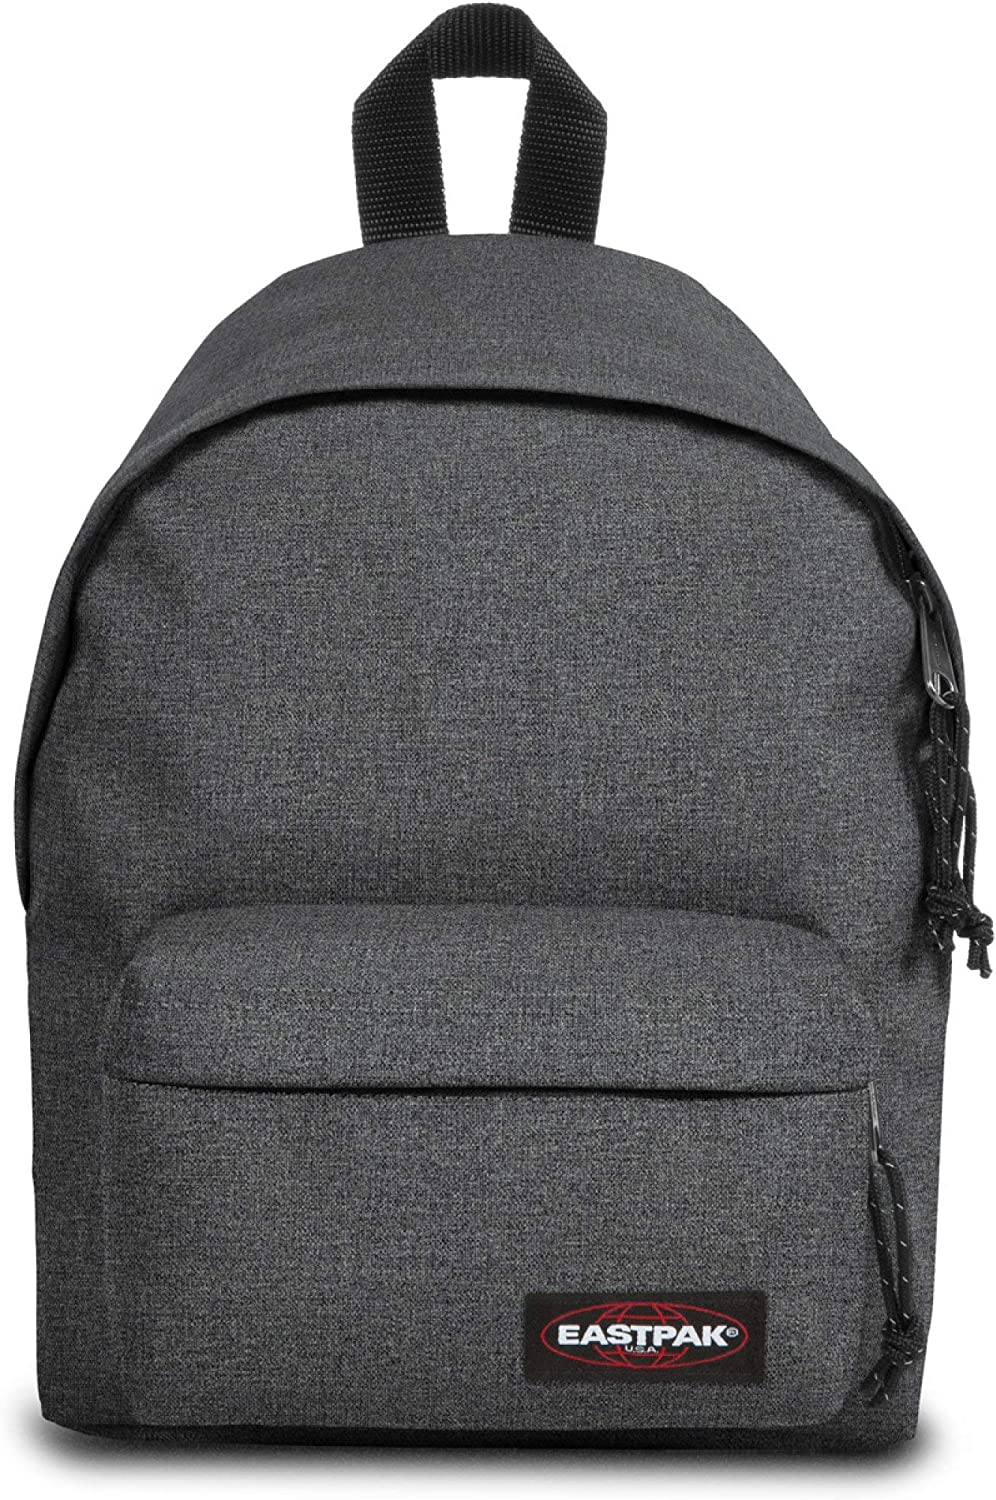 Eastpak Orbit Mini Mochila, 34 cm, 10 L, Gris (Black Denim): Amazon.es: Equipaje